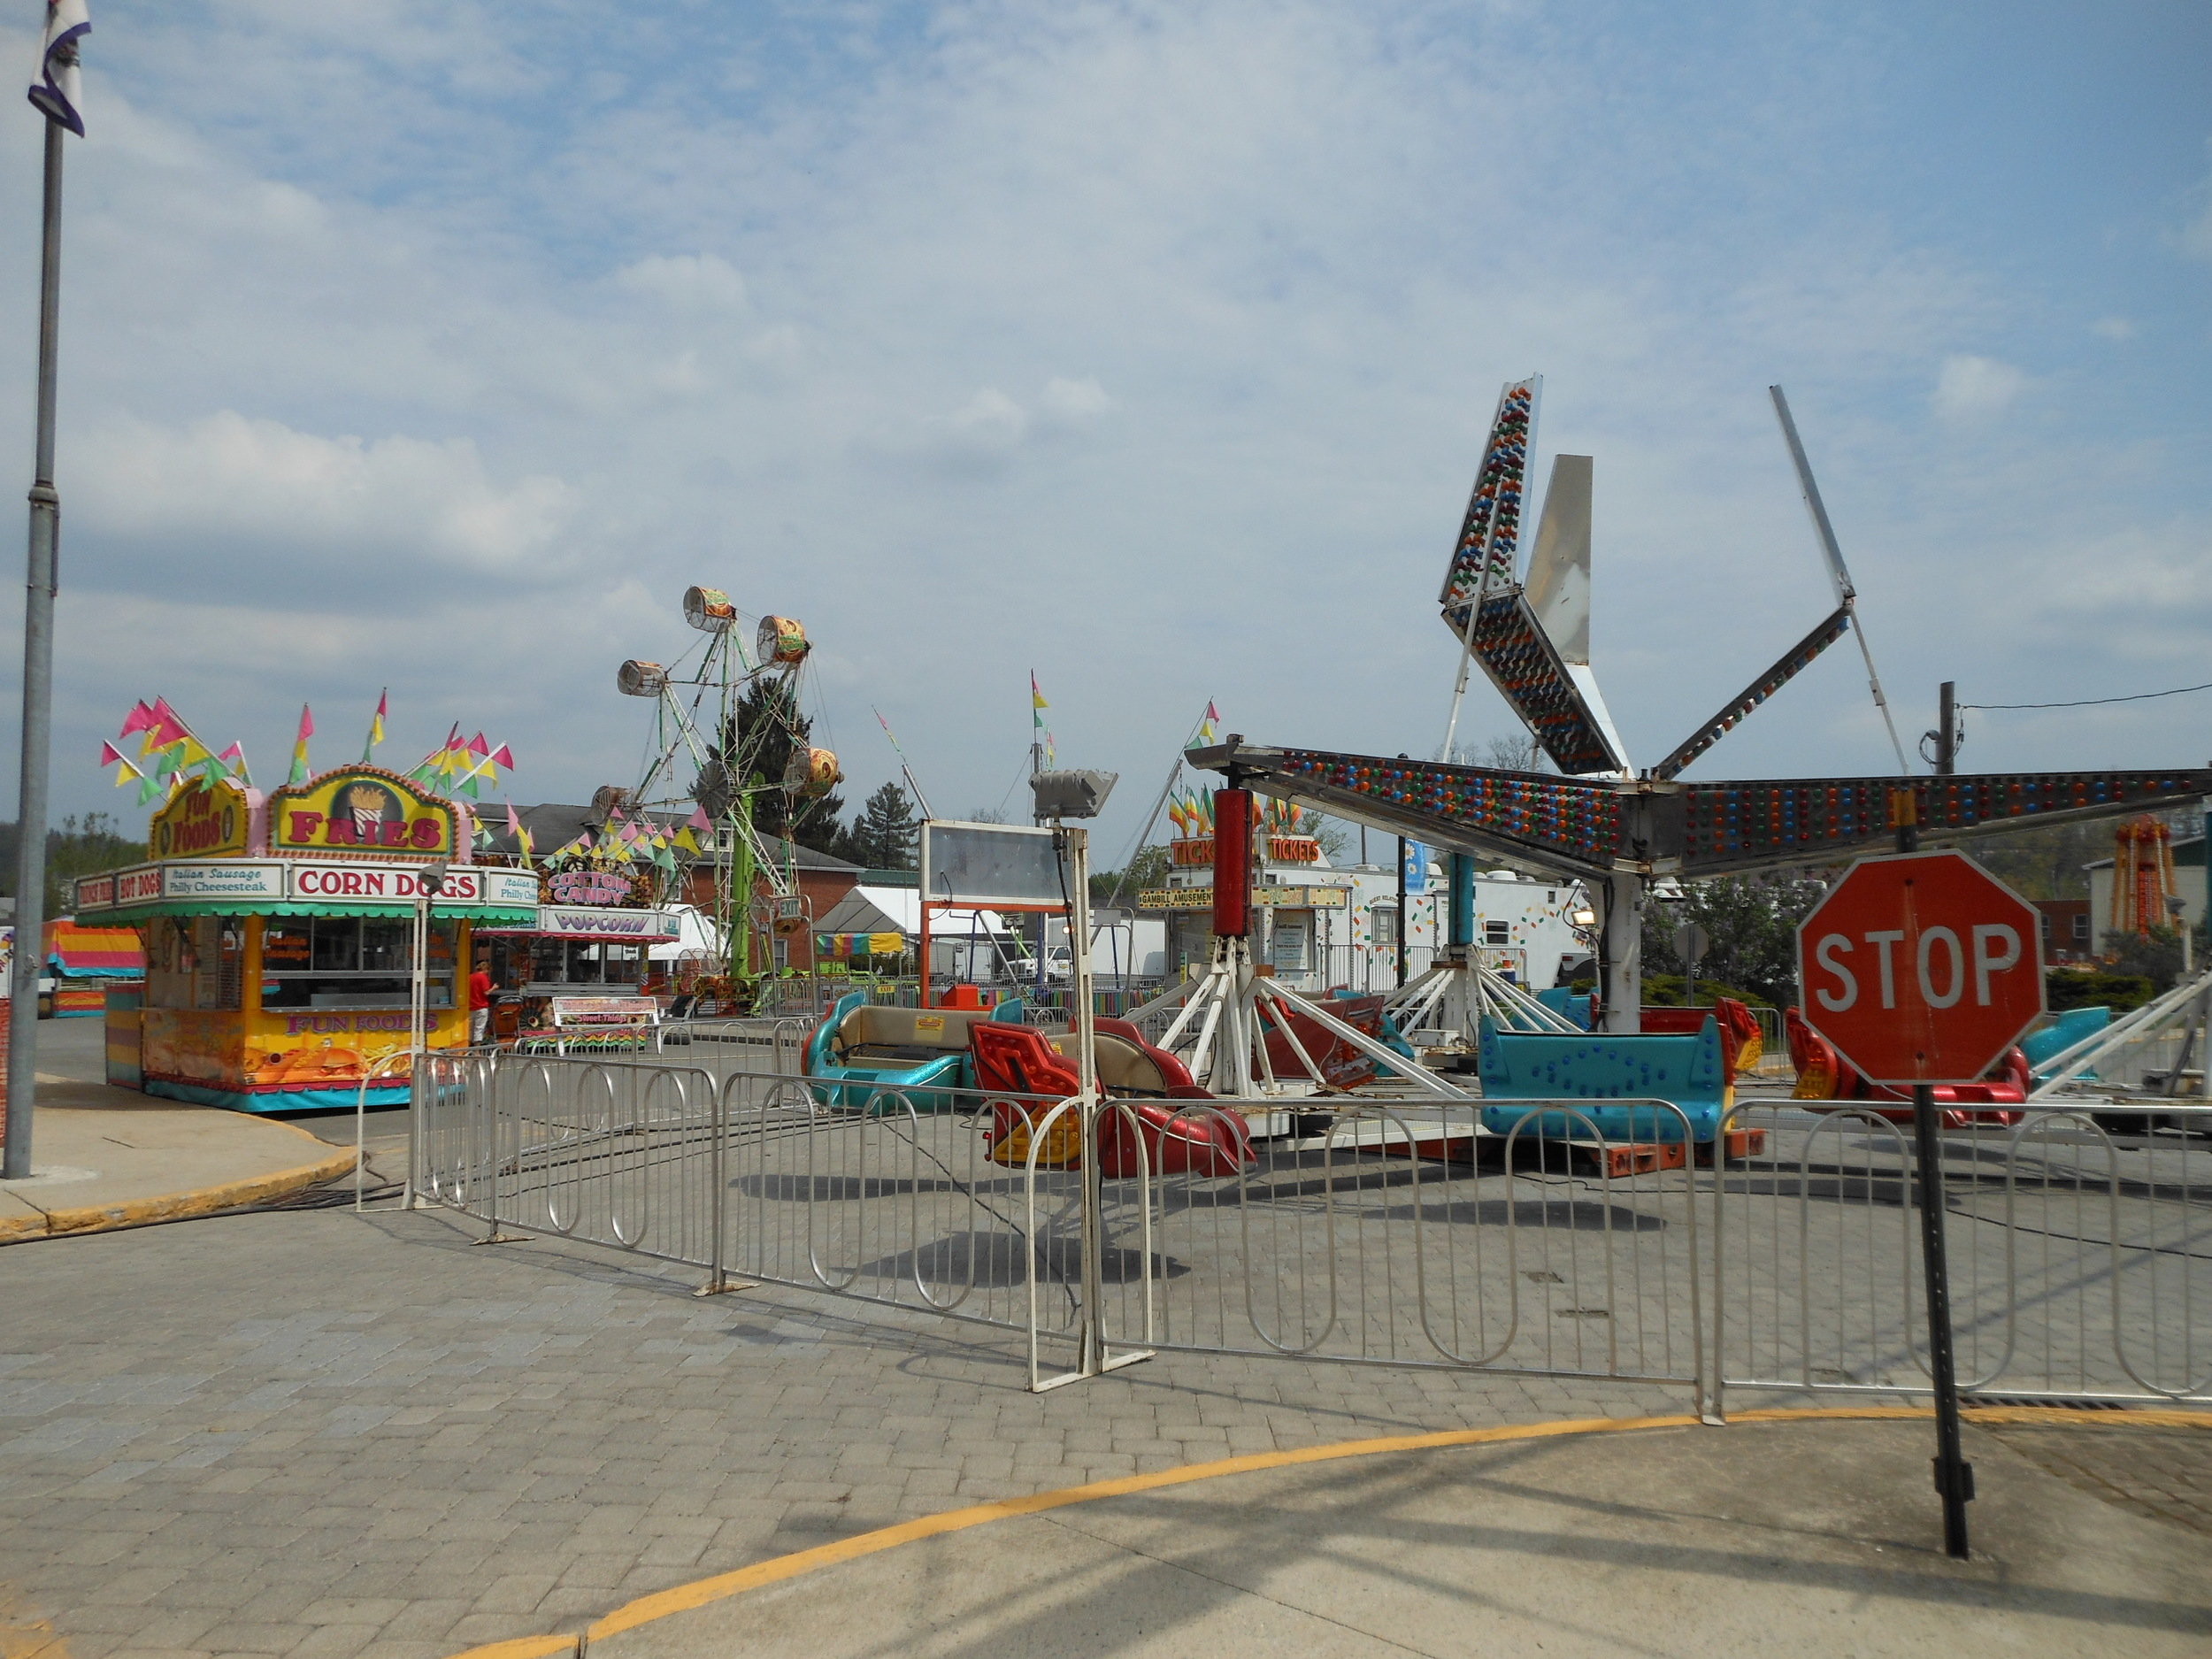 Fairgrounds have popped up in the middle of town.